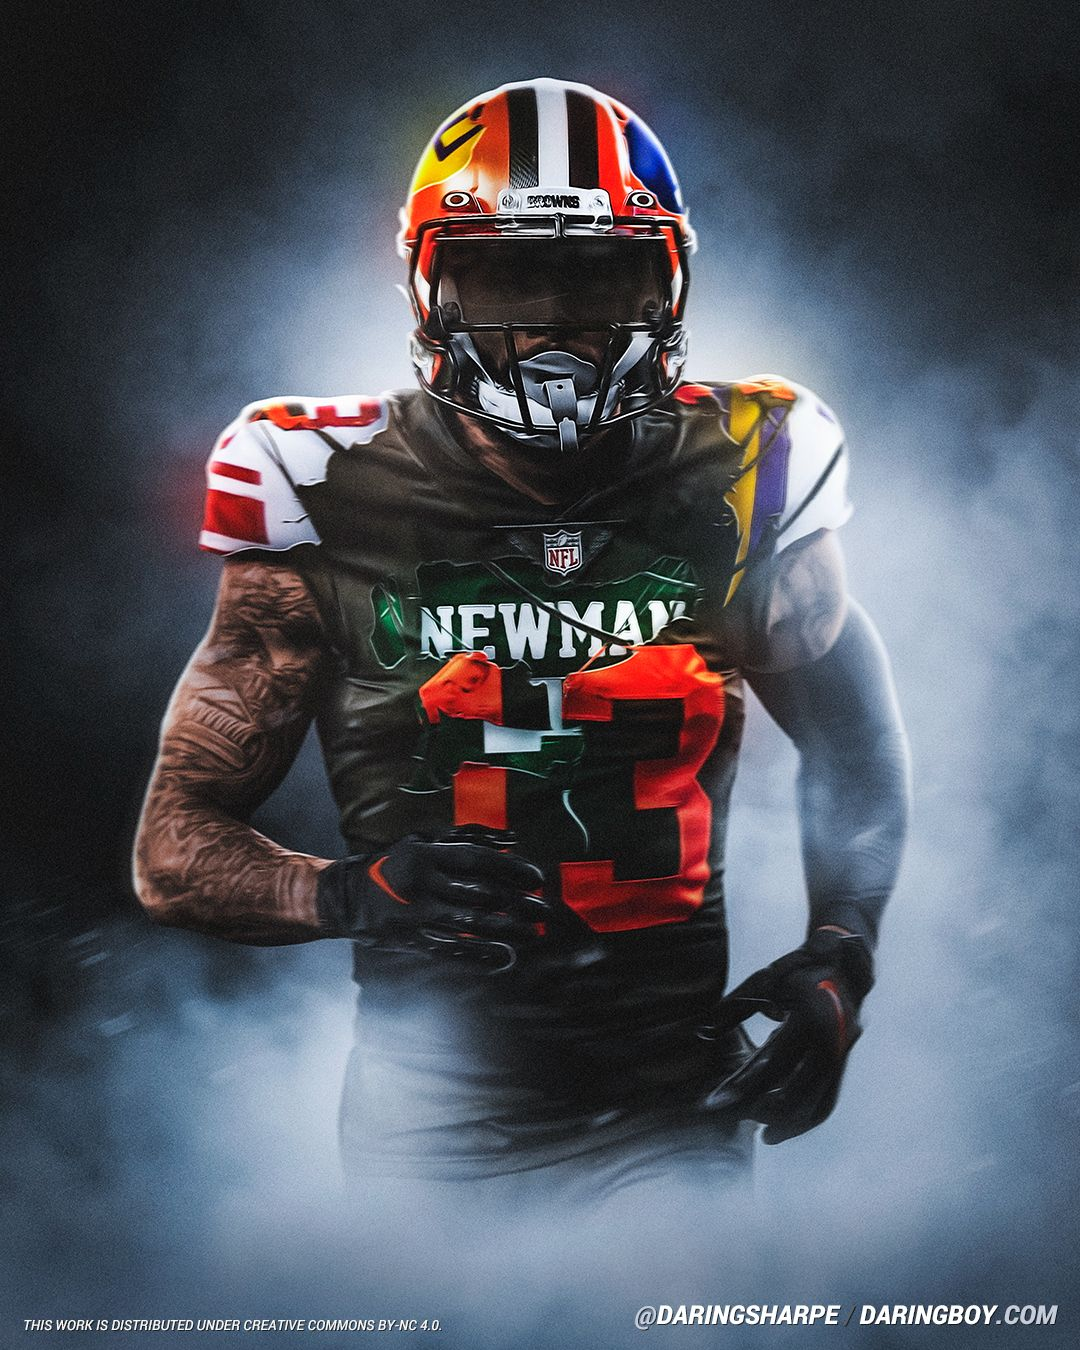 Odell Beckham Jr Isidore Newman Greenies Lsu Tigers New York Giants Cleveland Browns In 2020 Beckham Jr Nfl Football Wallpaper Odell Beckham Jr Wallpapers